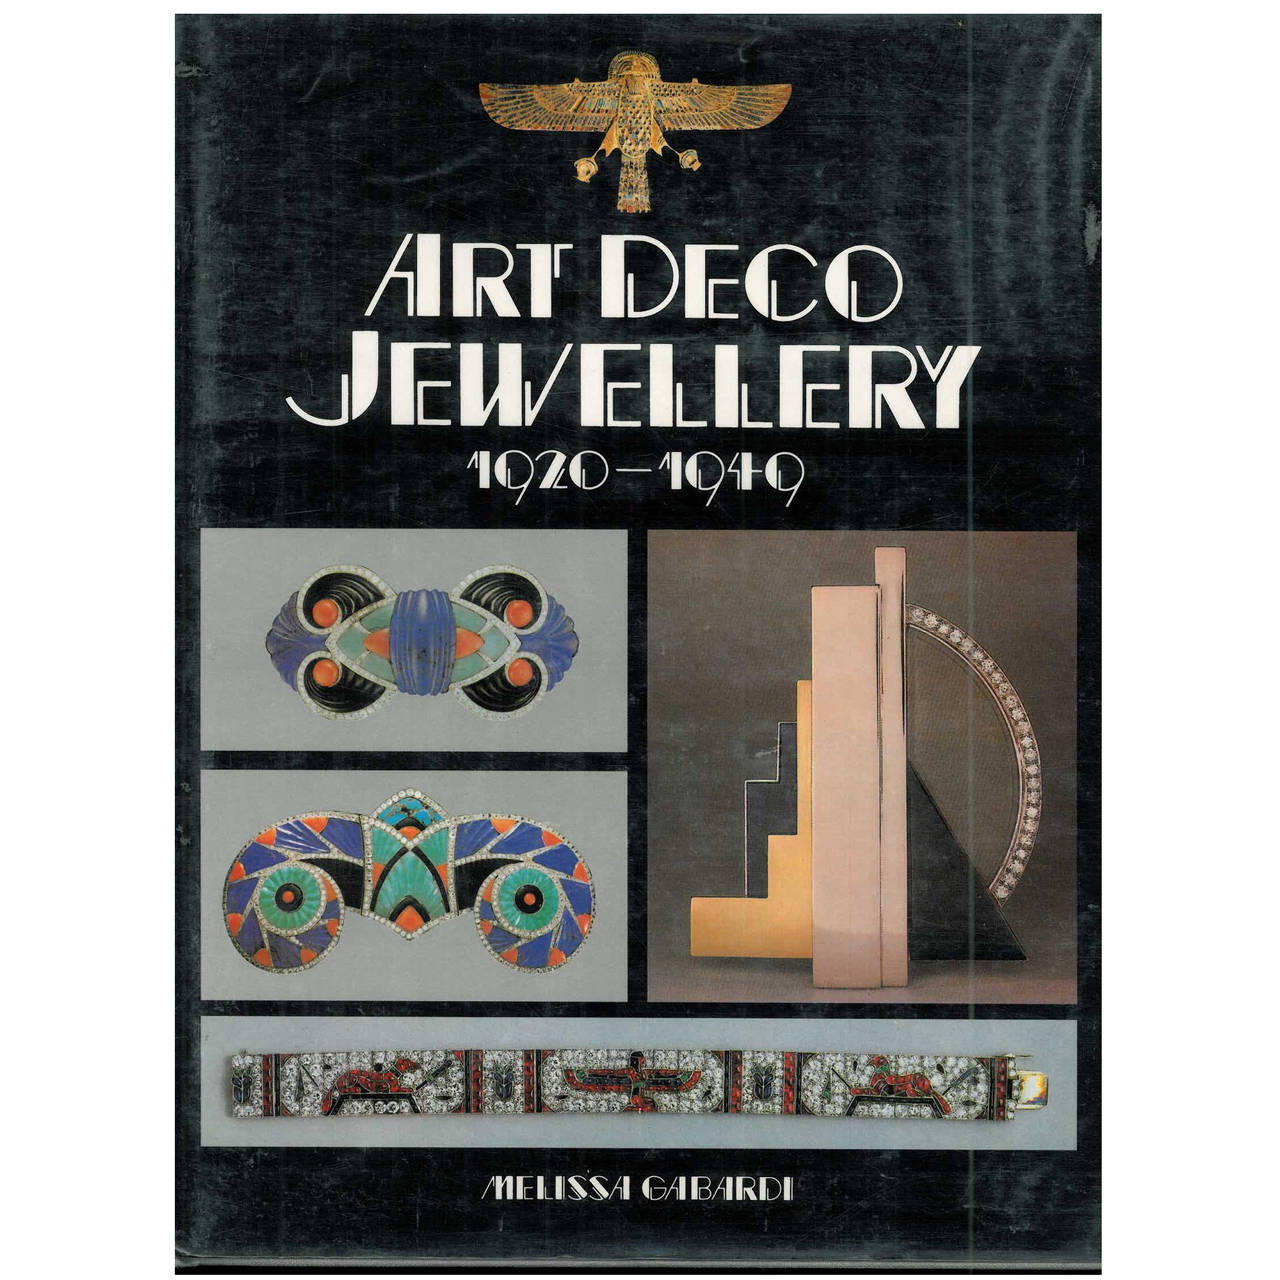 Book Of Art Deco Jewellery 1920 1949 For Sale At 1stdibs